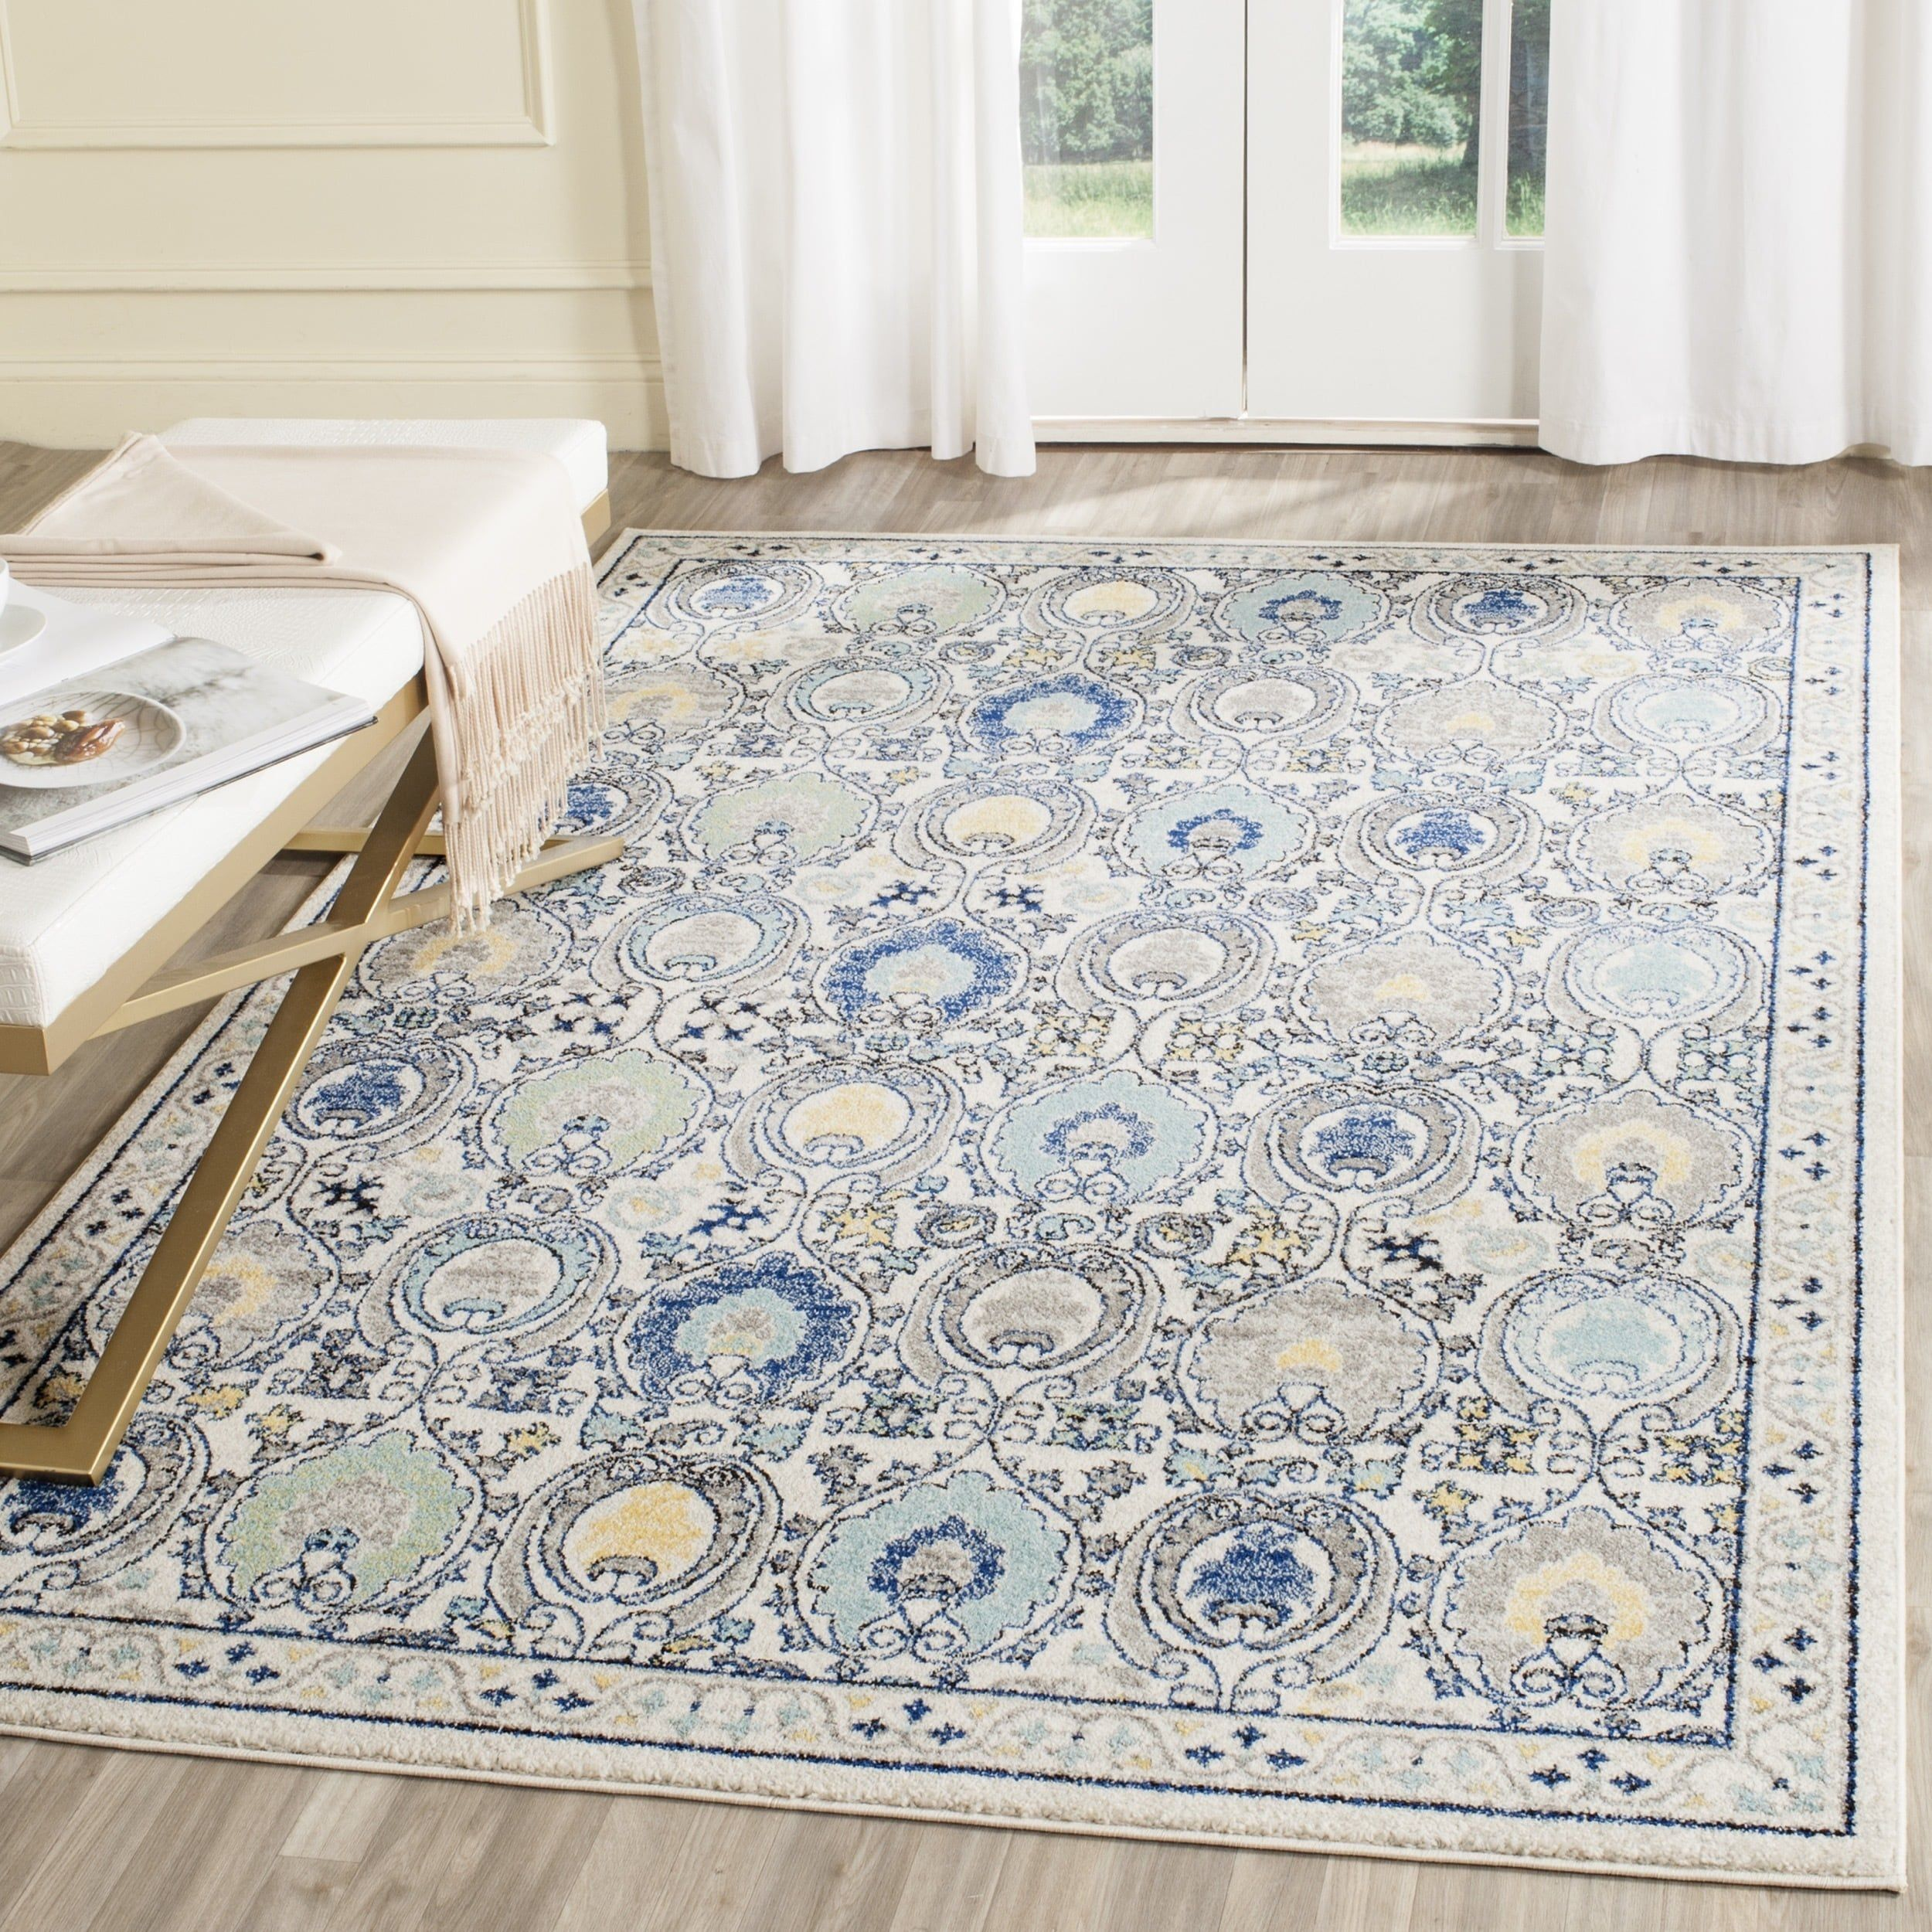 home ships safavieh x canada cream product garden overstock tunisia light rug blue to